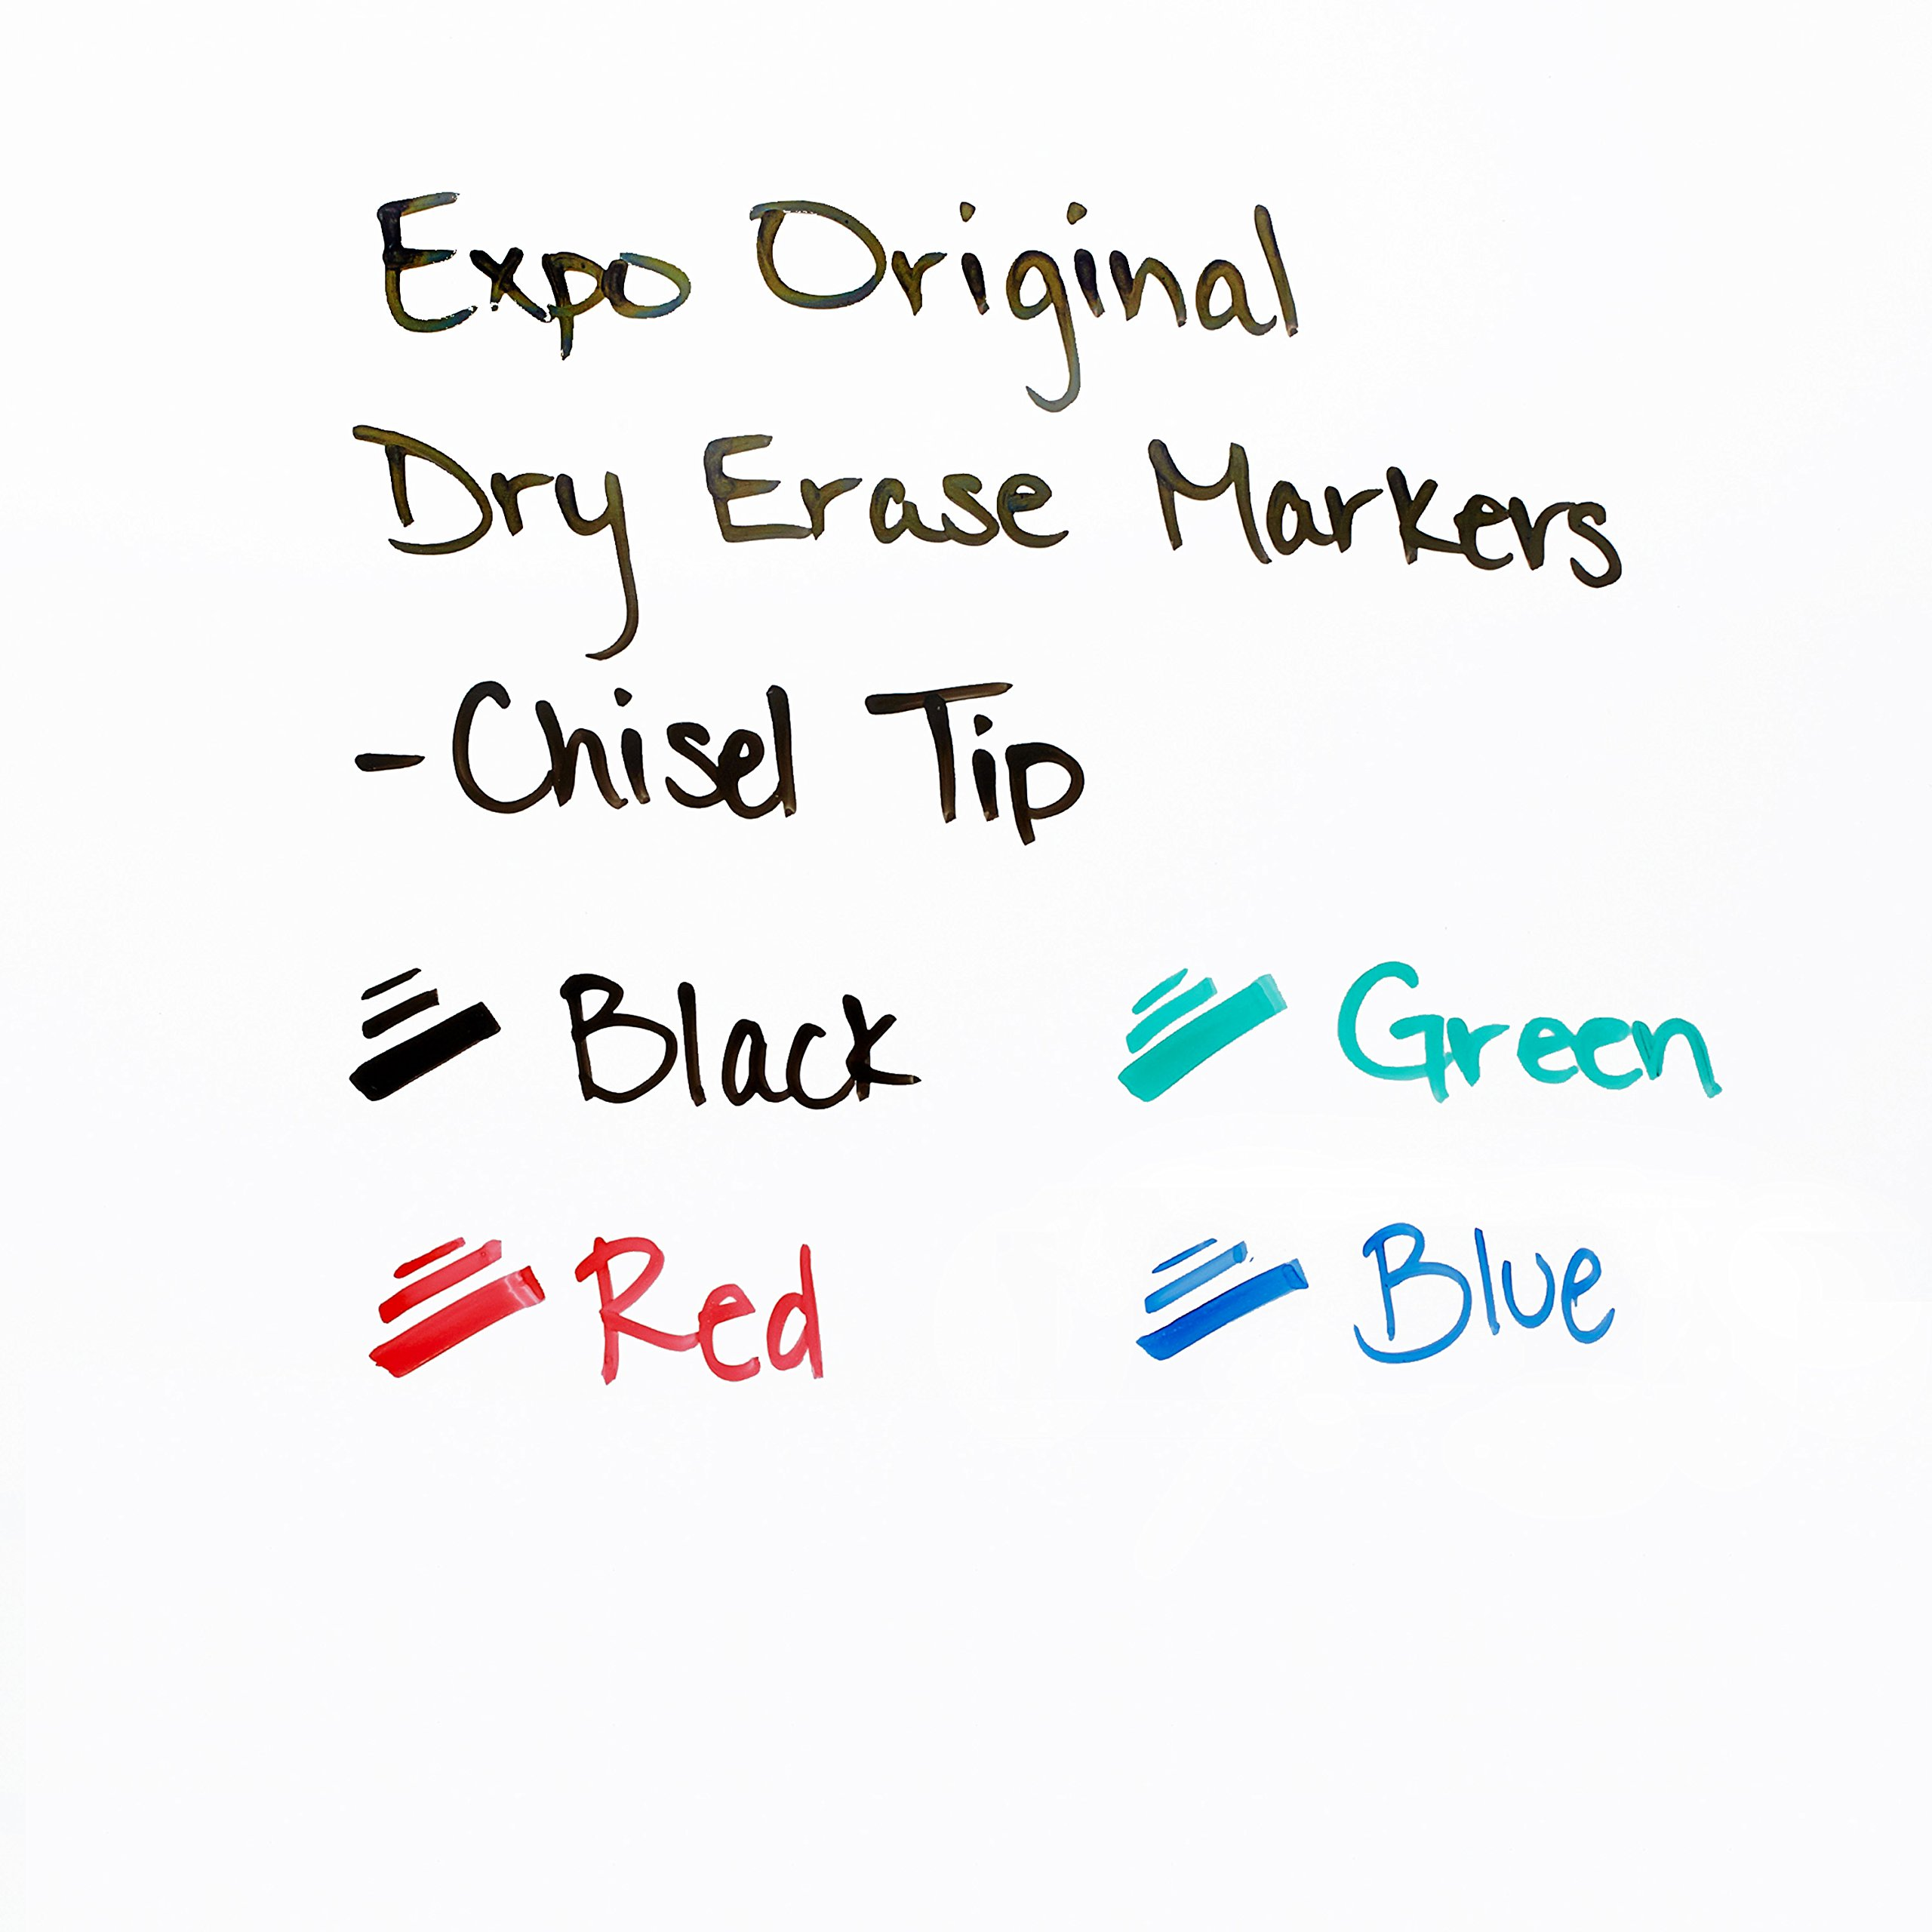 EXPO Low Odor Chisel Tip Dry Erase Markers, Chisel Tip, Assorted Colors, 4-Count by Expo (Image #4)